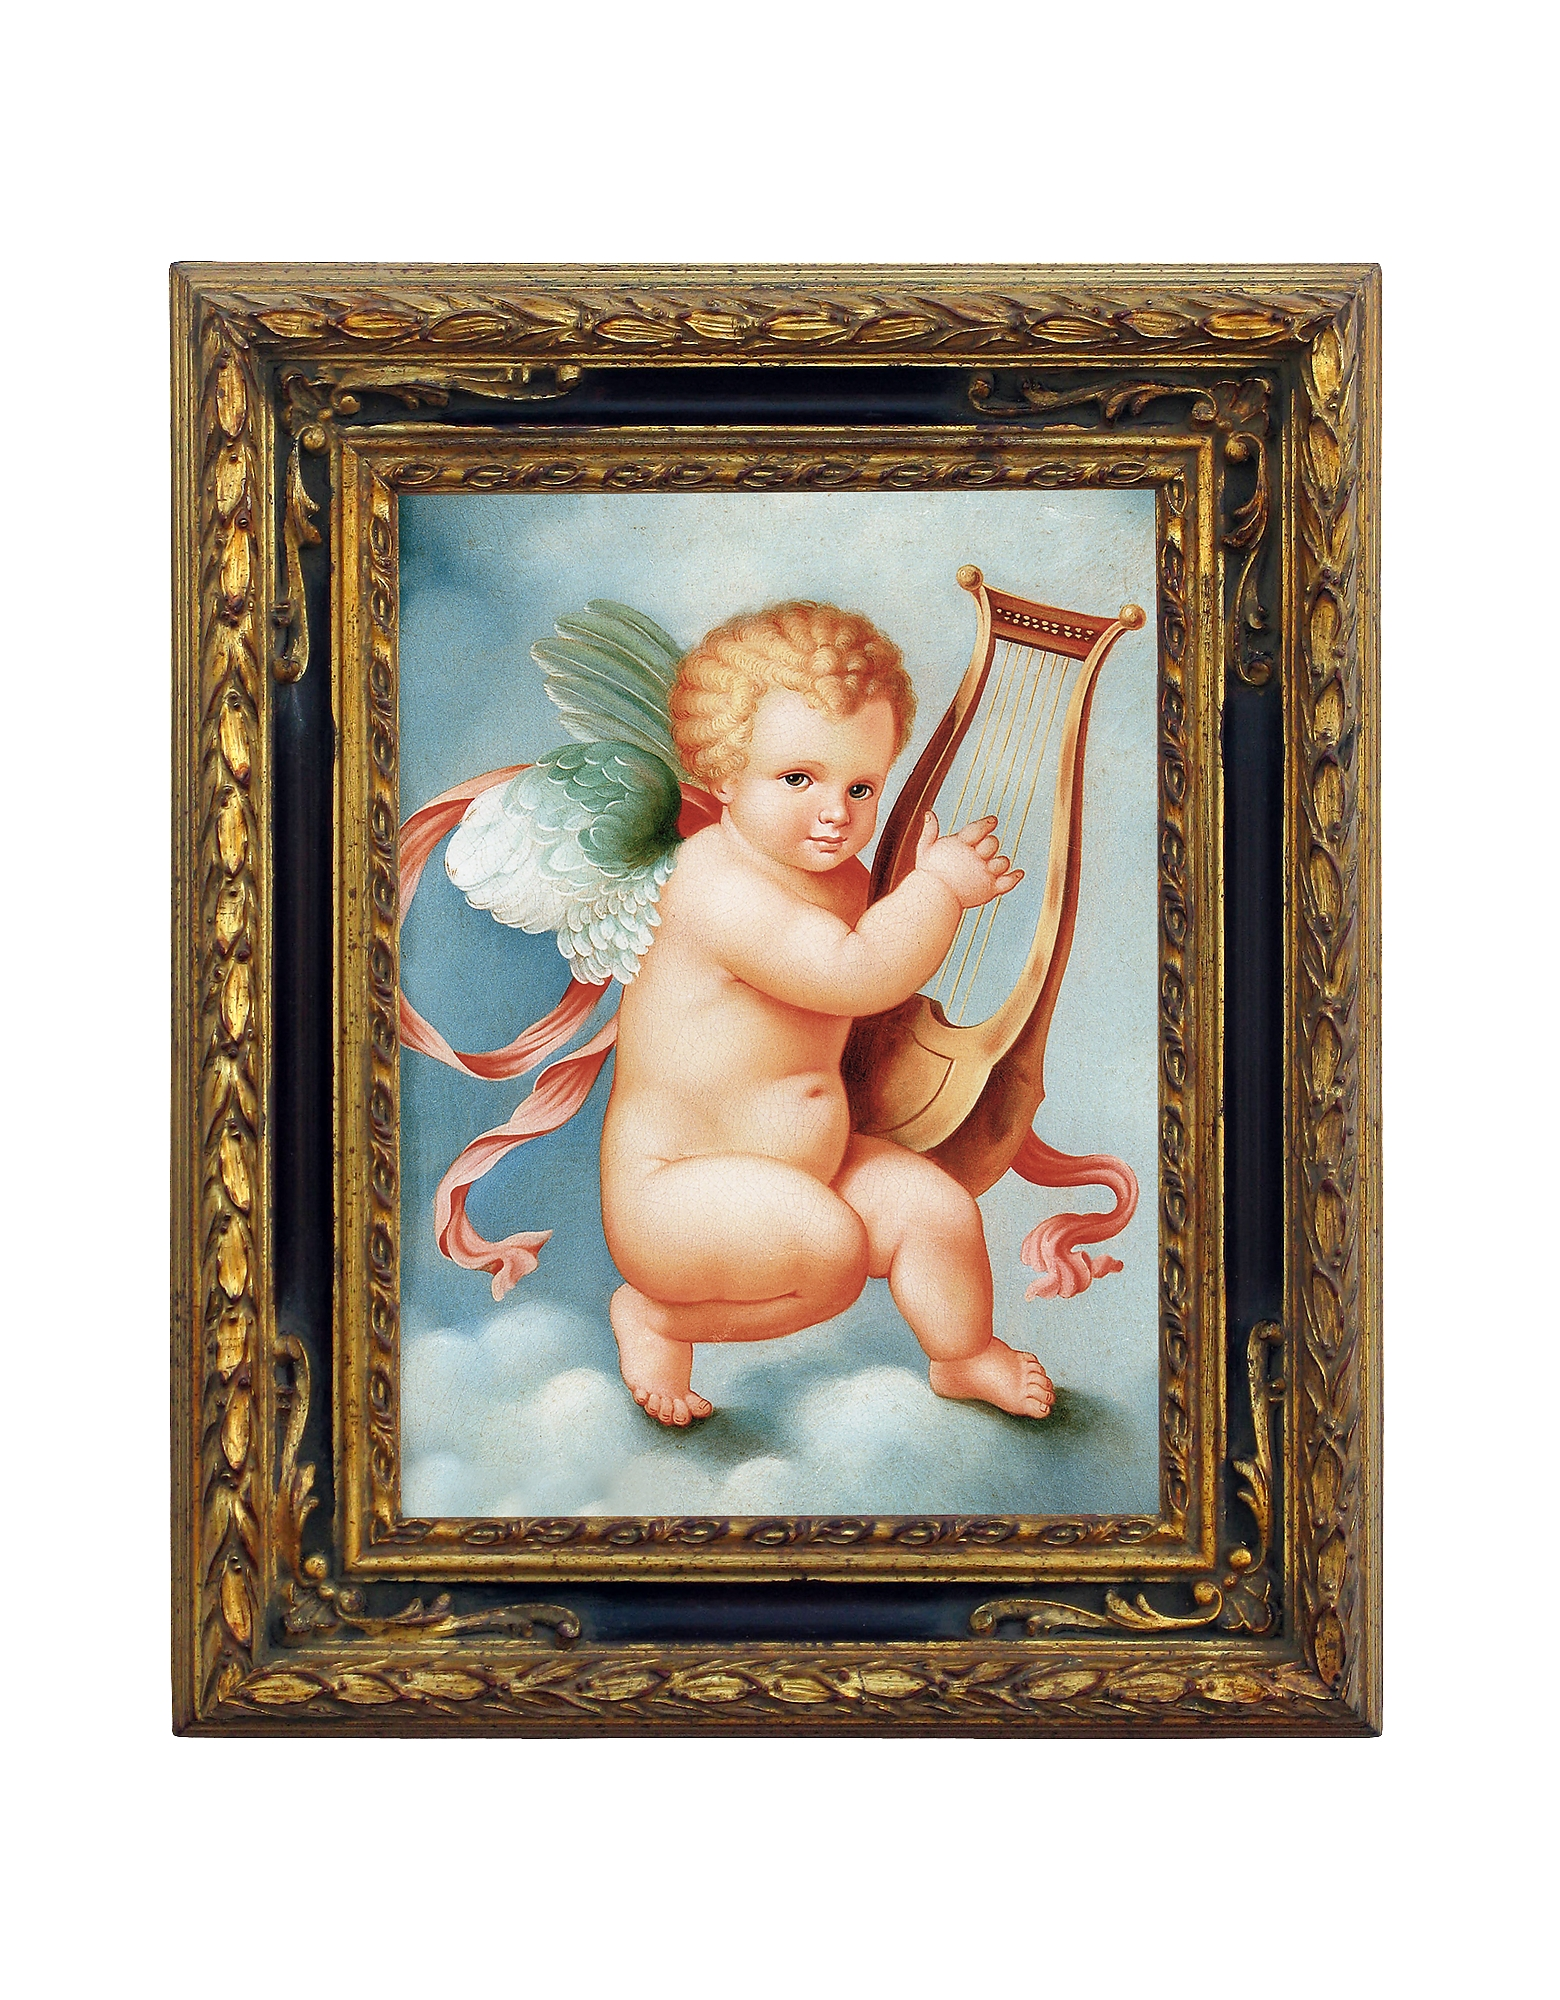 Bianchi Arte Paintings, Oil on Canvas Cherub Painting